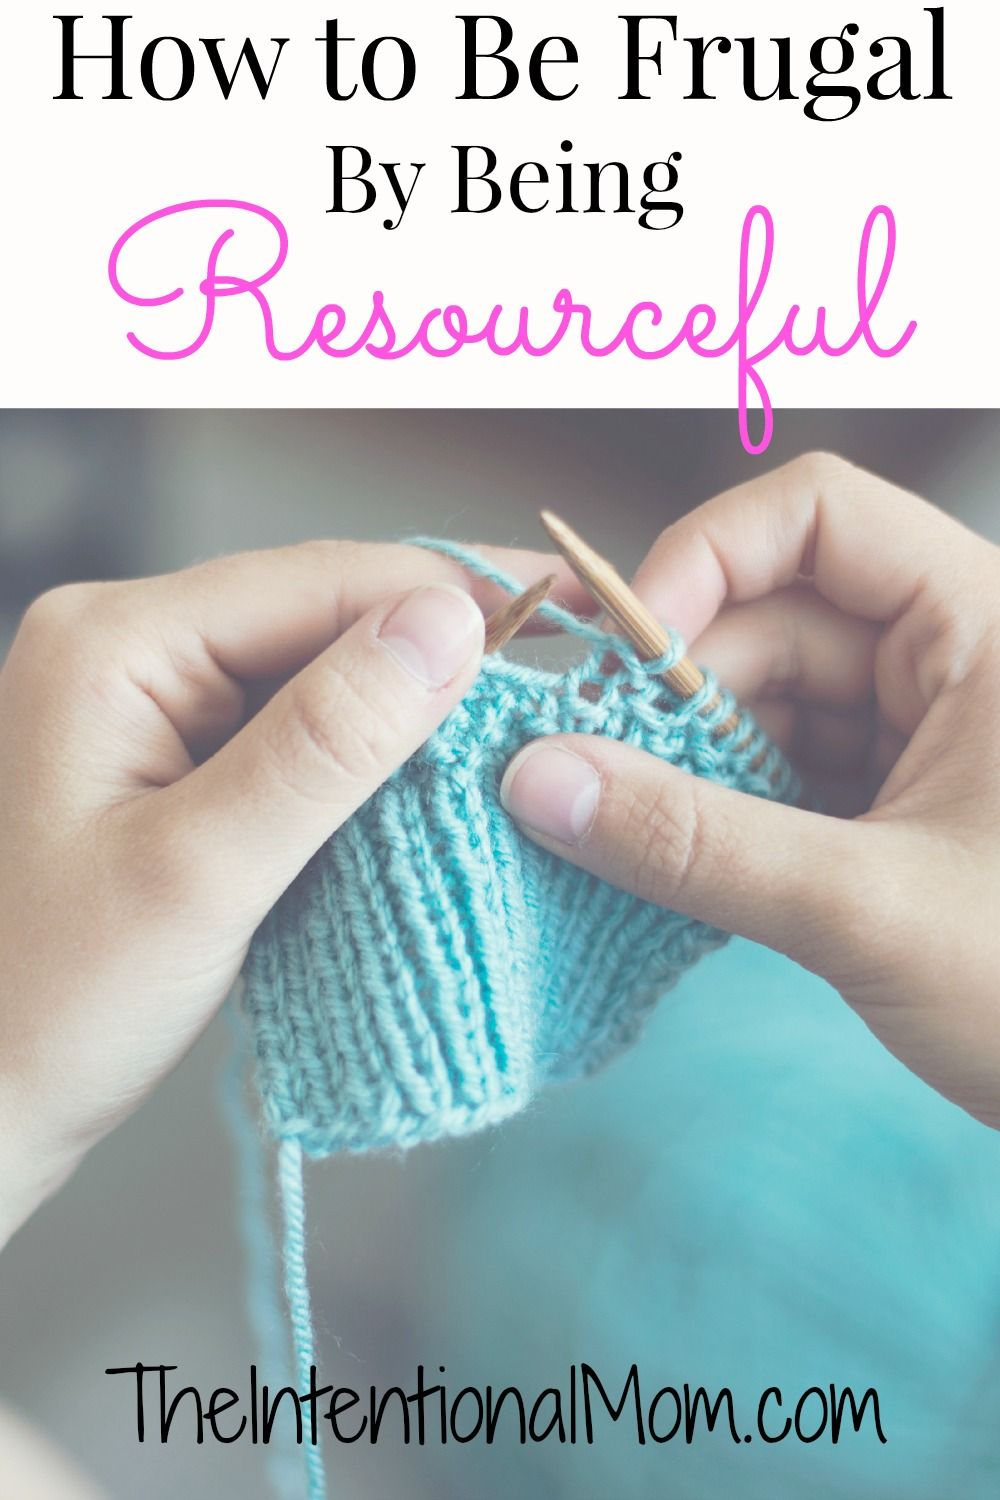 In day 9 of our How to Be Frugal series, I show you some simple ways that you can learn to be resourceful, which can add up to BIG savings over time!